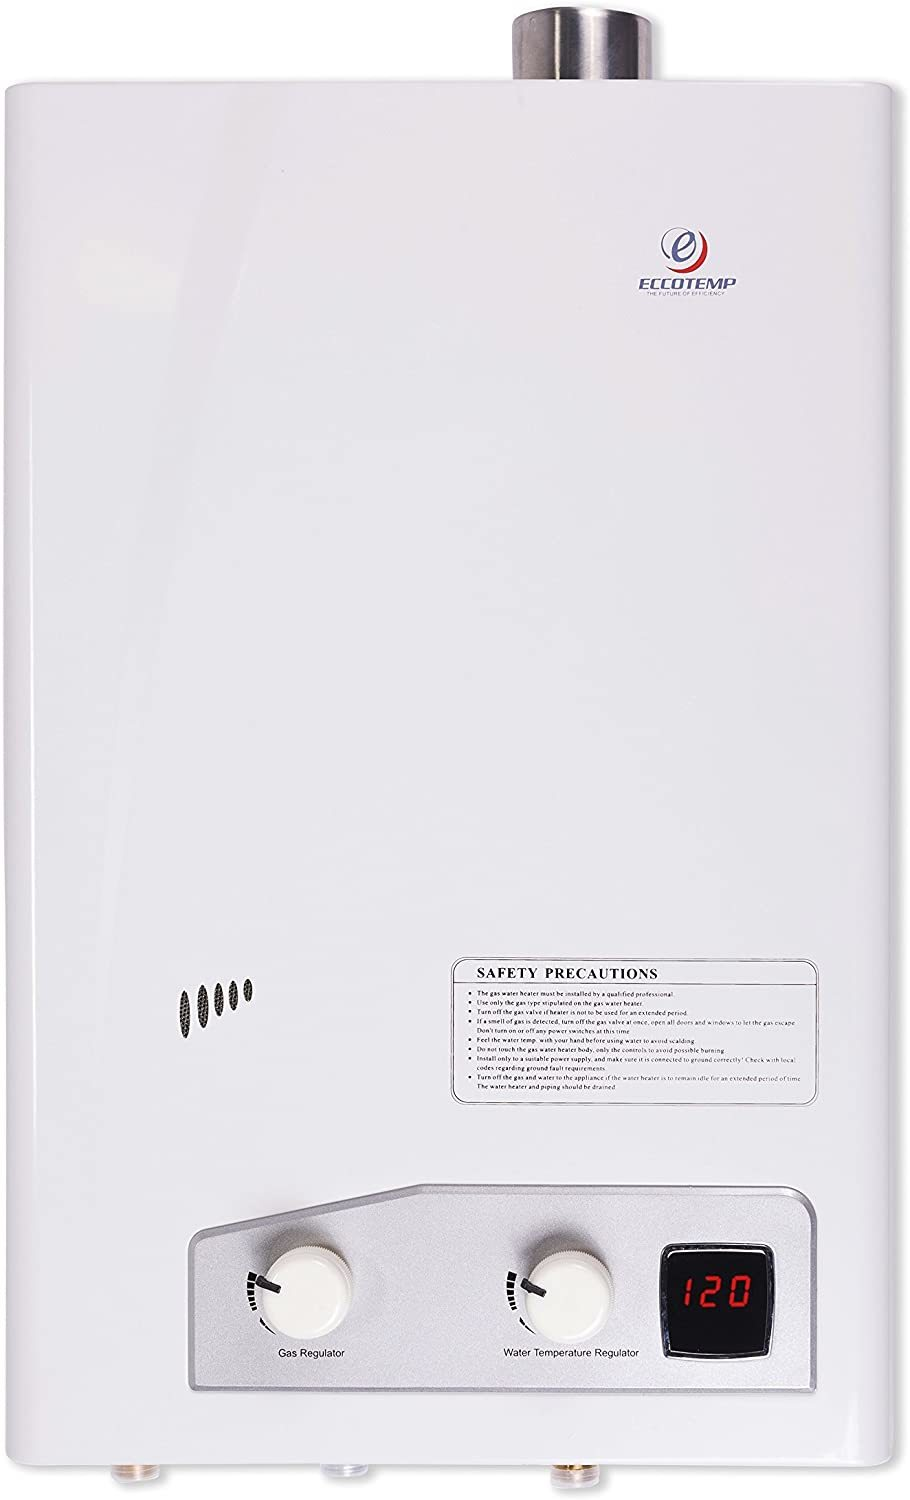 Eccotemp FVI-12-NG High-Capacity Gas Tankless Water Heater Review